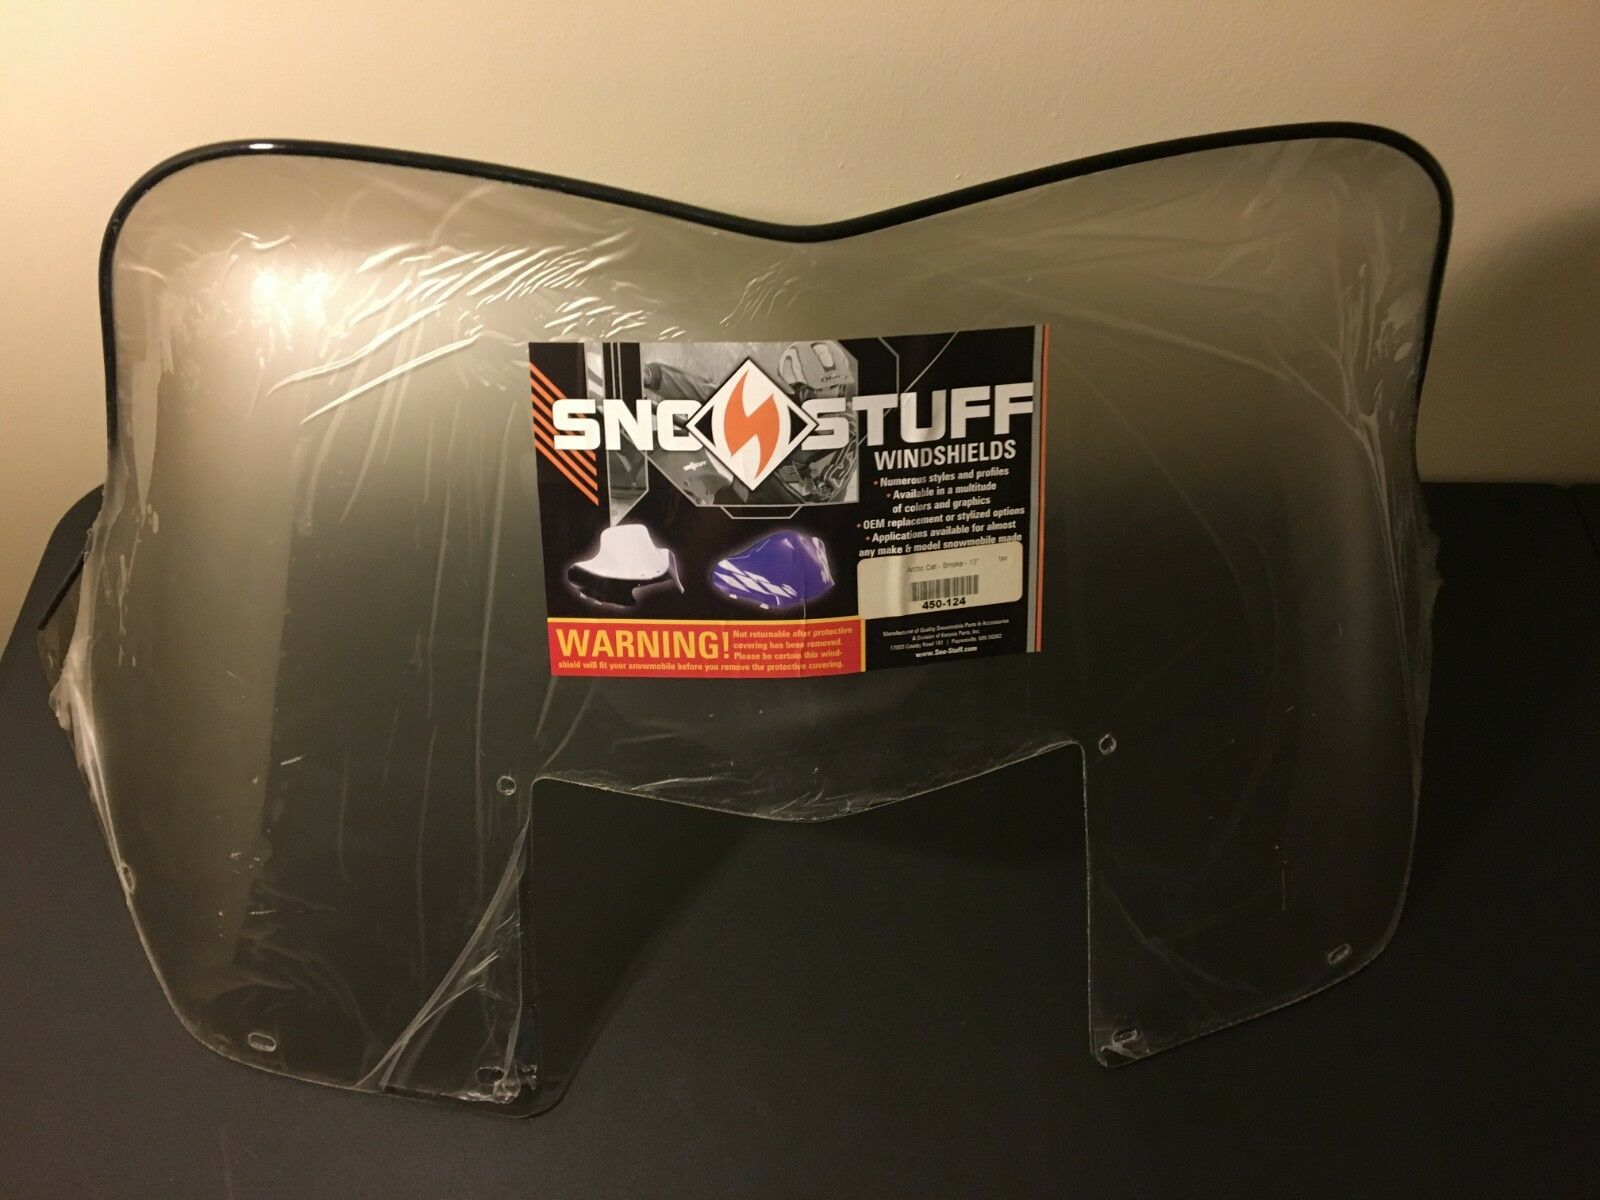 New Vintage Arctic Cat Sno Stuff Windshield '80 - '81 Jag 0117-213